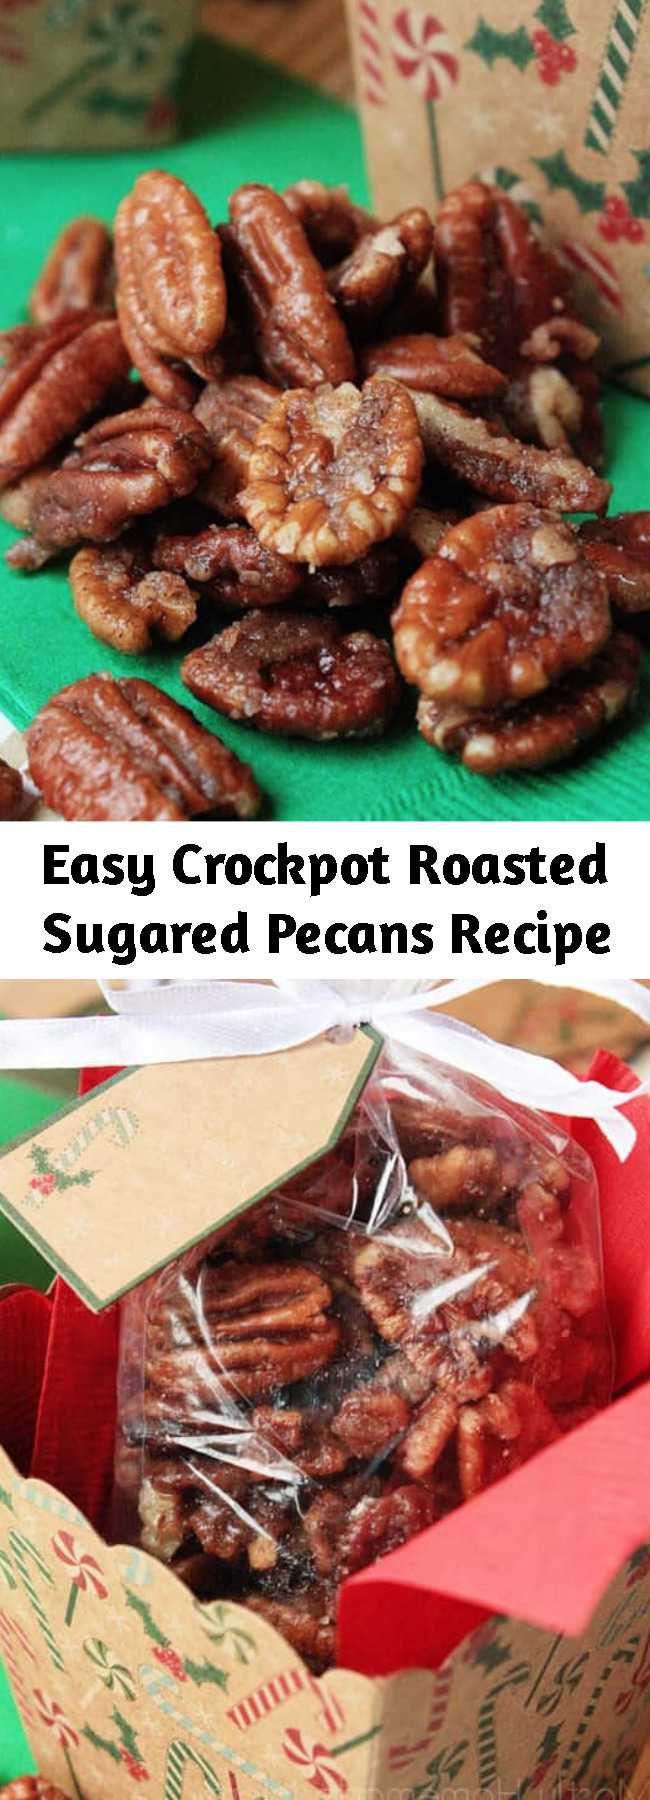 Easy Crockpot Roasted Sugared Pecans Recipe - Halved pecans tossed with butter, powdered sugar, and spices and slow cooked until glazed. These make wonderful Christmas gifts!